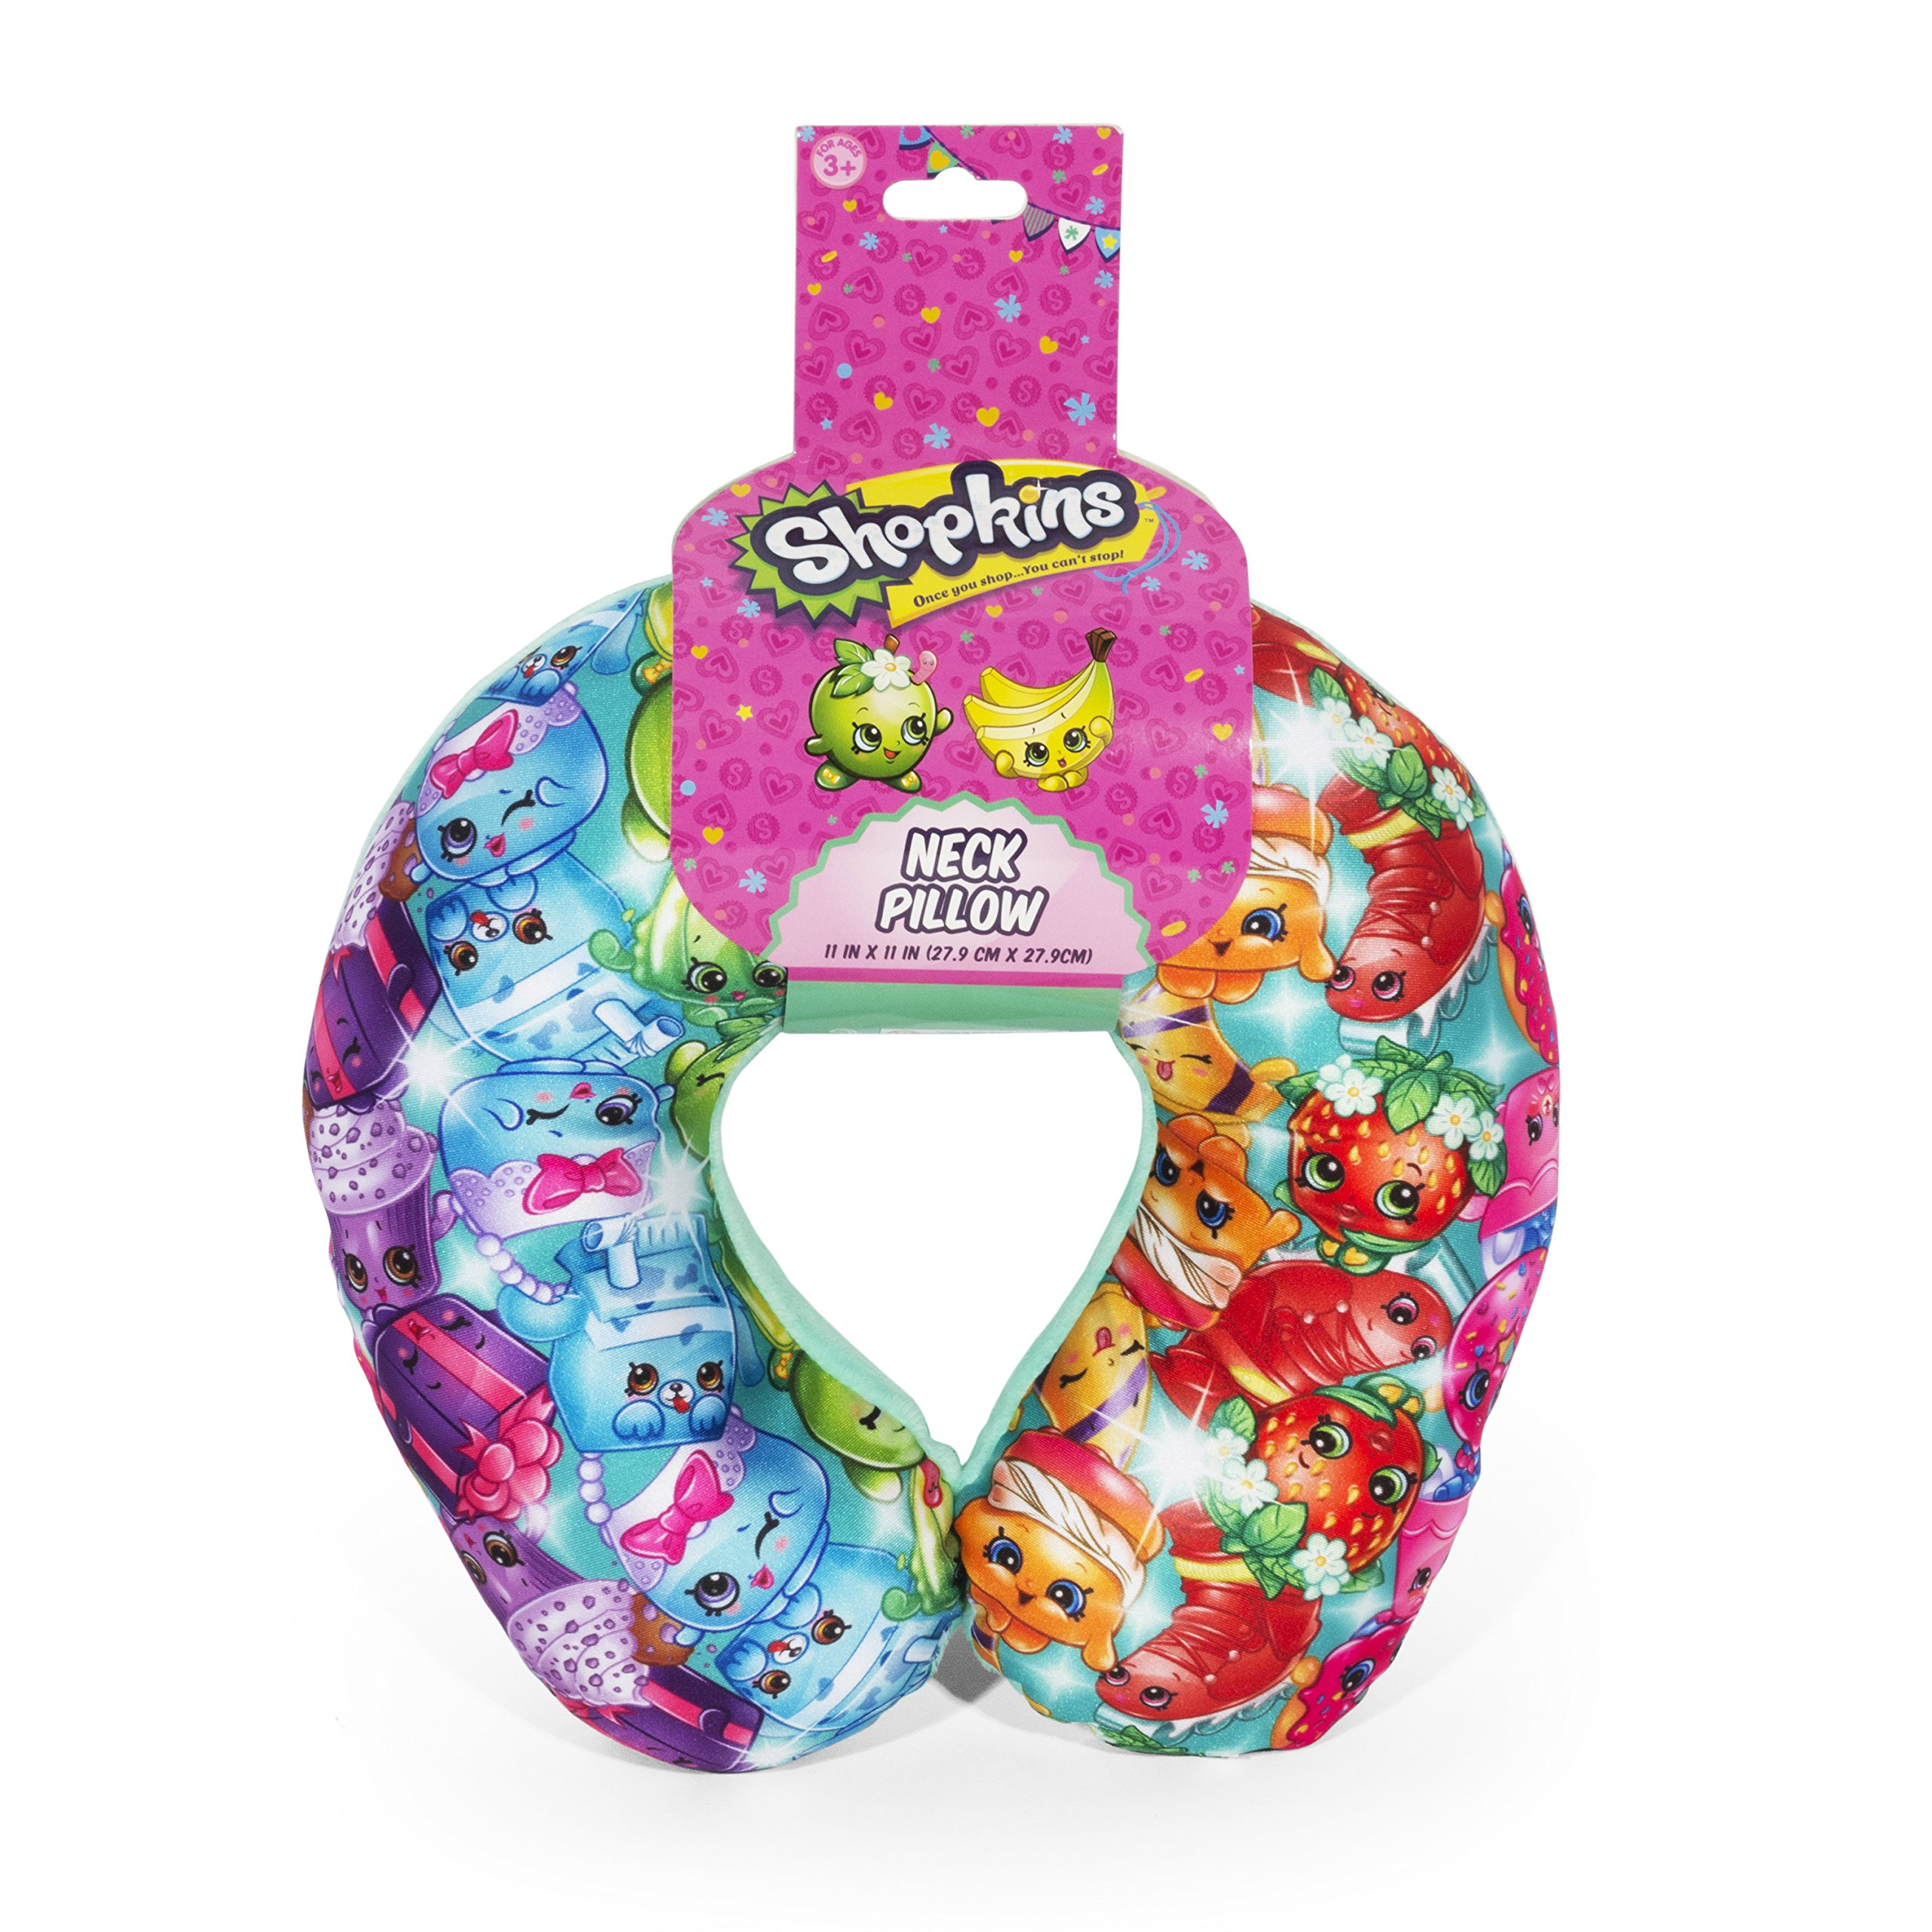 Shopkins Rainbow Multi Colored Travel Neck Pillow For Kids. by FAB Starpoint (Image #1)